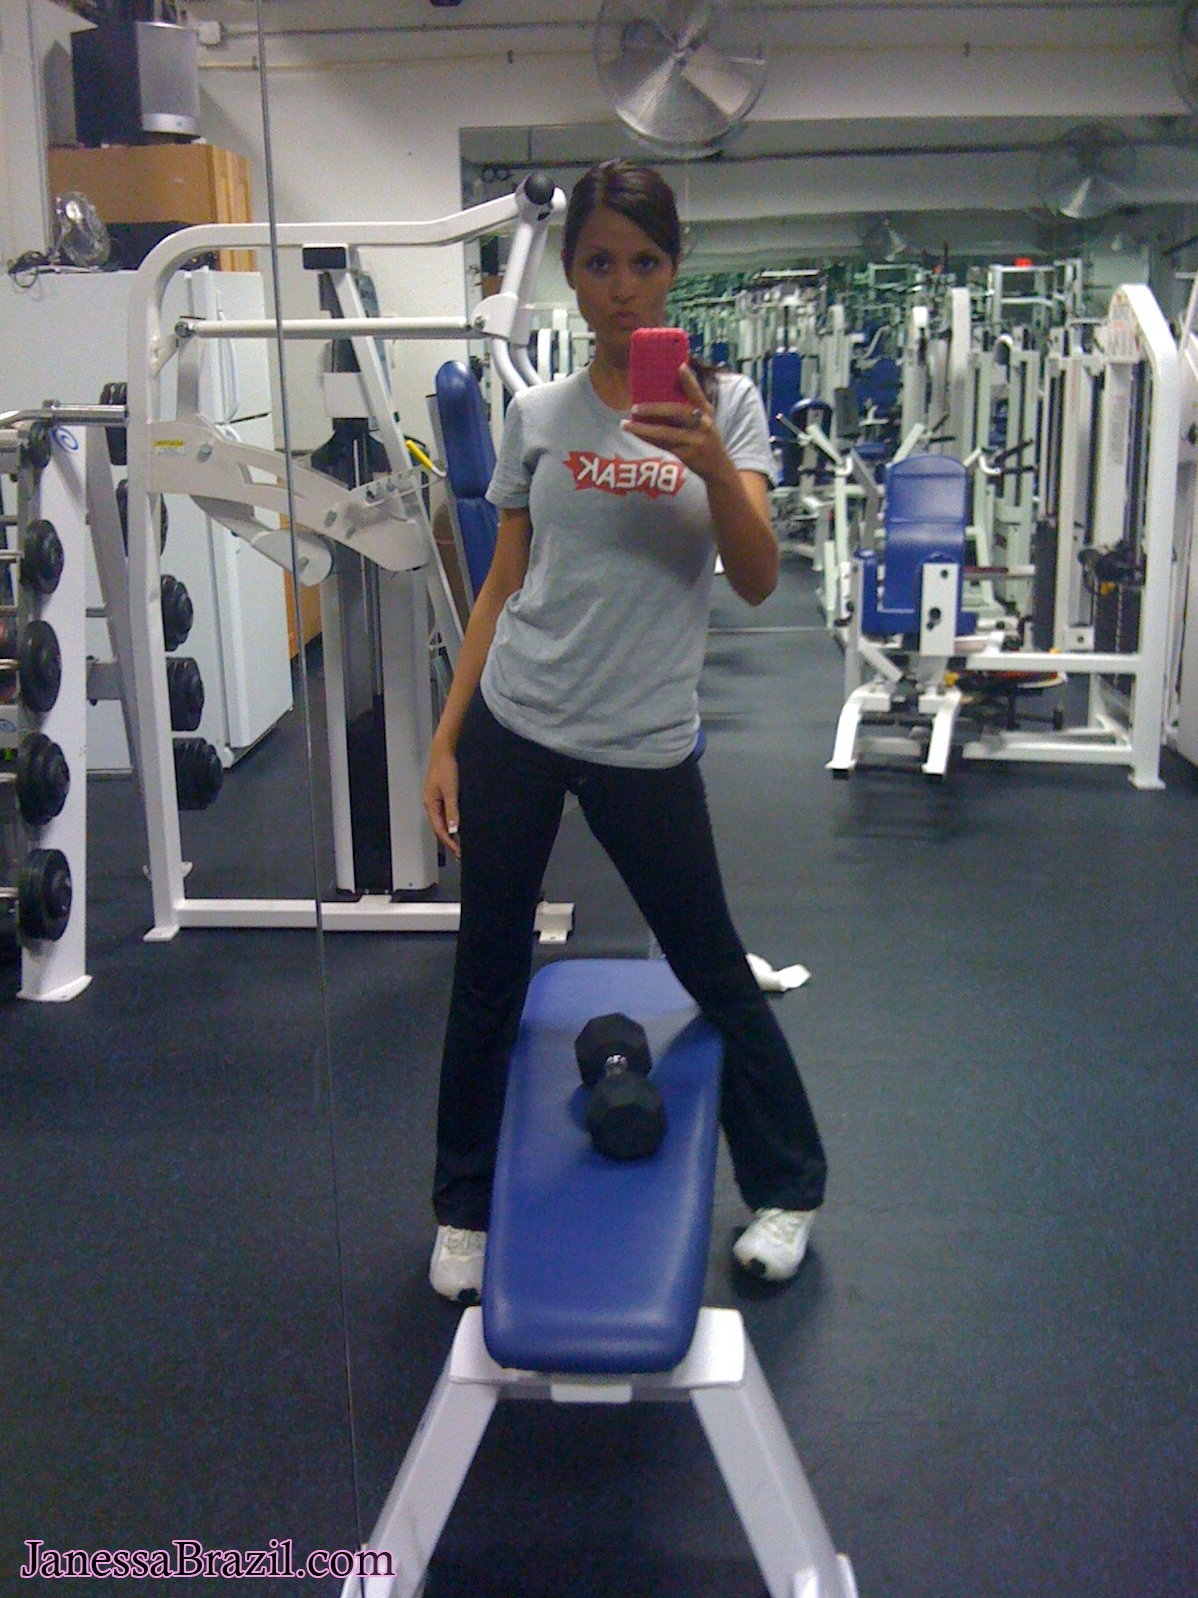 Janessa Brazil Working Out with her Iphone 1